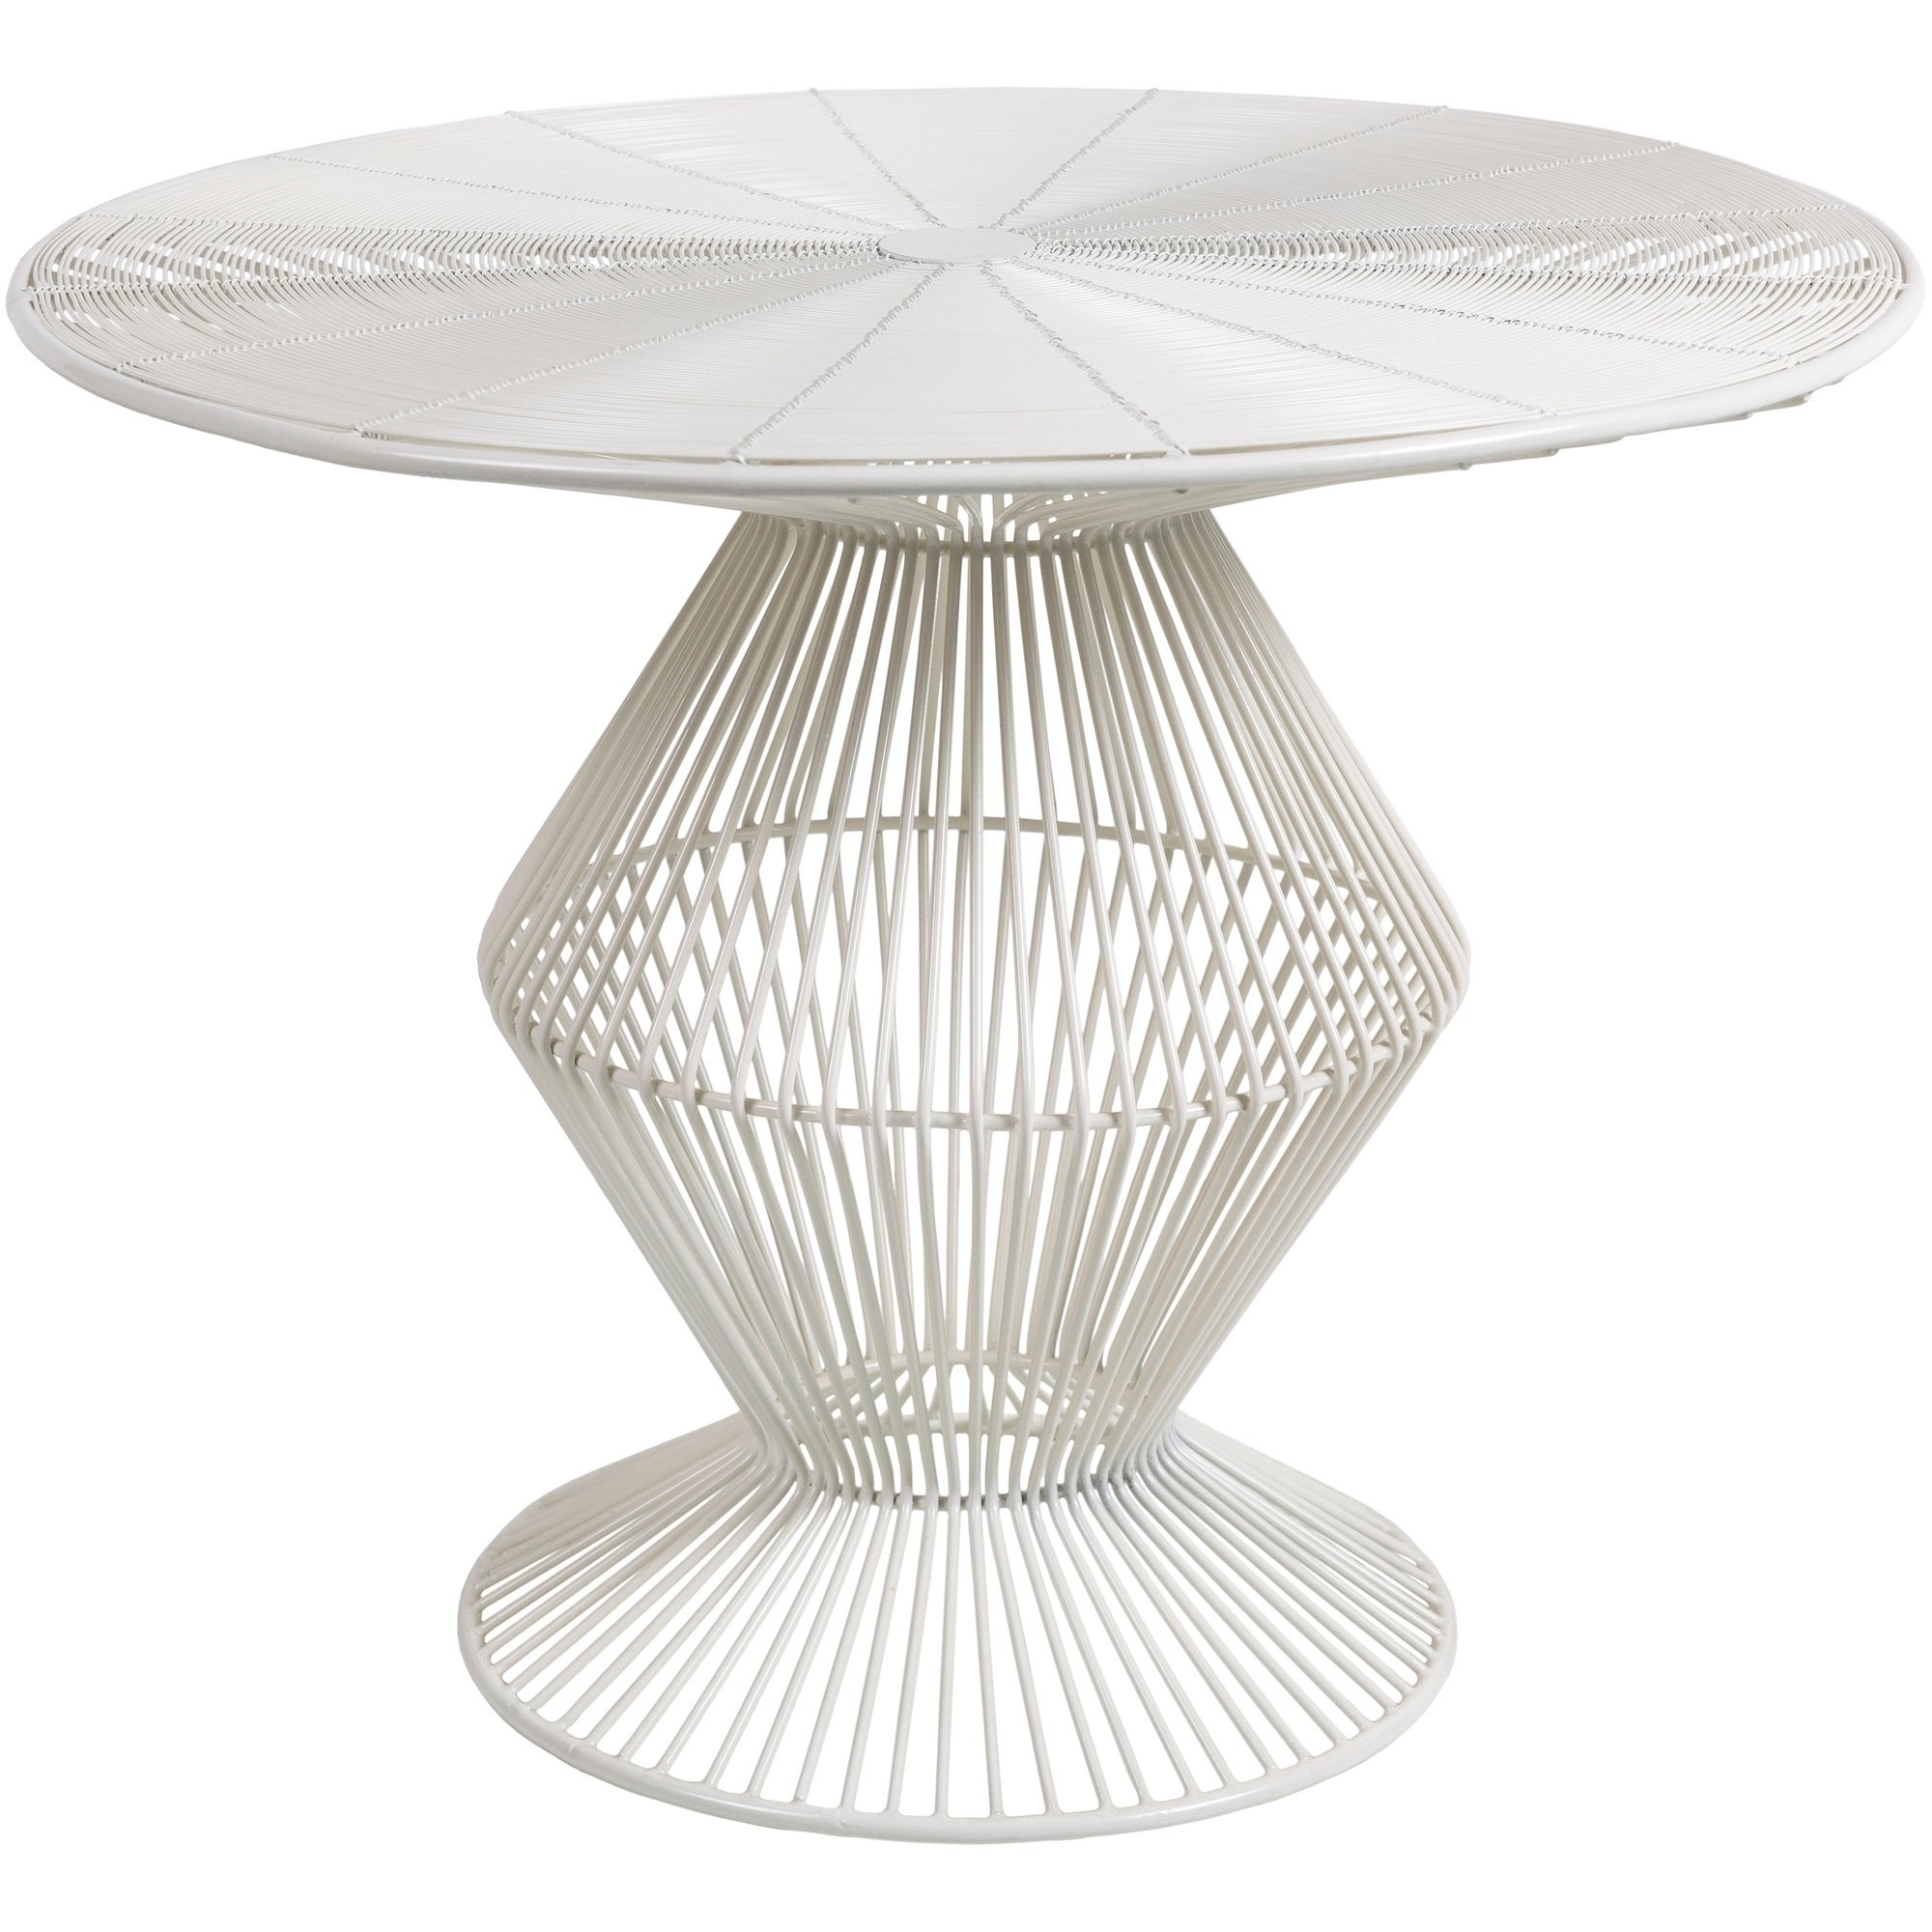 ryder white modern metal wire accent table free shipping small today mirrored lamp sofa and coffee hampton bay furniture pier nightstands glass tiffany style chandelier shabby